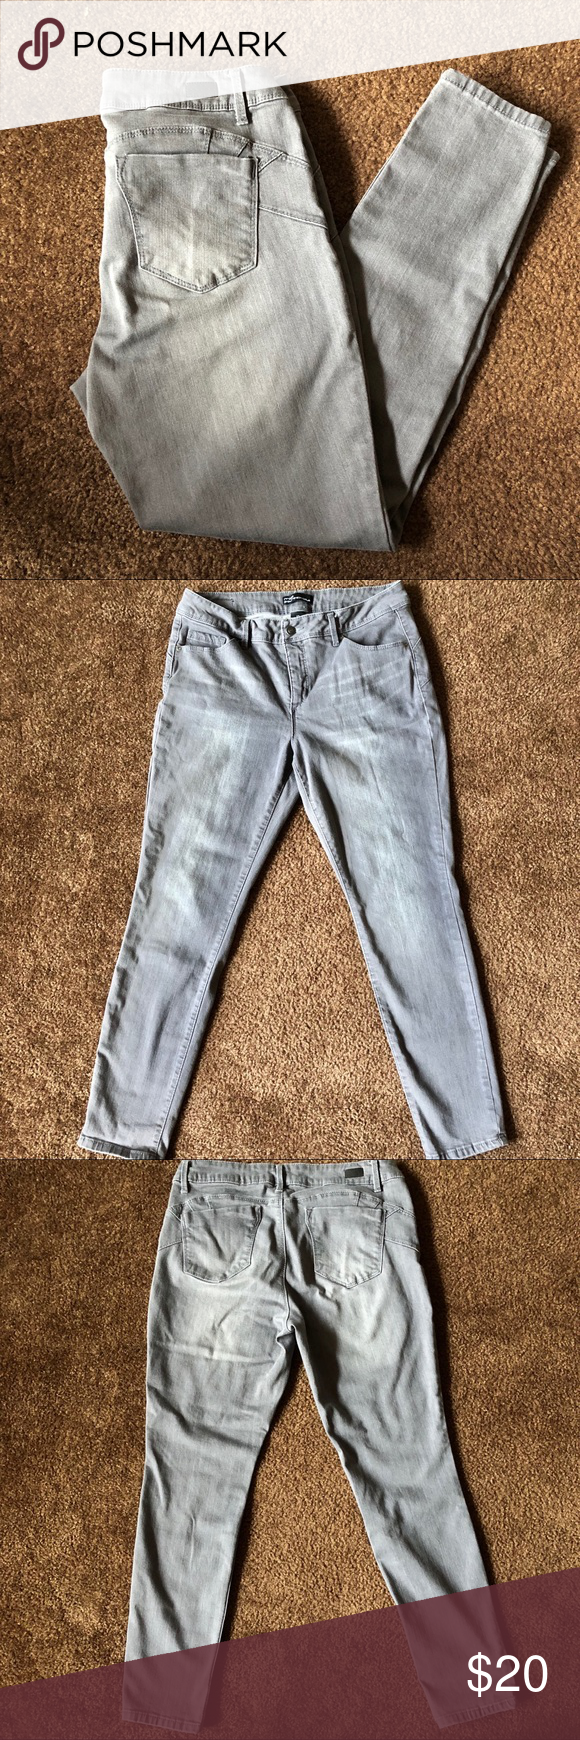 Miss Poured In Blue Gray Skinny Jeans Size 12 Brand Miss Poured In Blue Style Skinny Color Gray Size 12 Condi Grey Skinny Jeans Blue Fashion Skinny Jeans